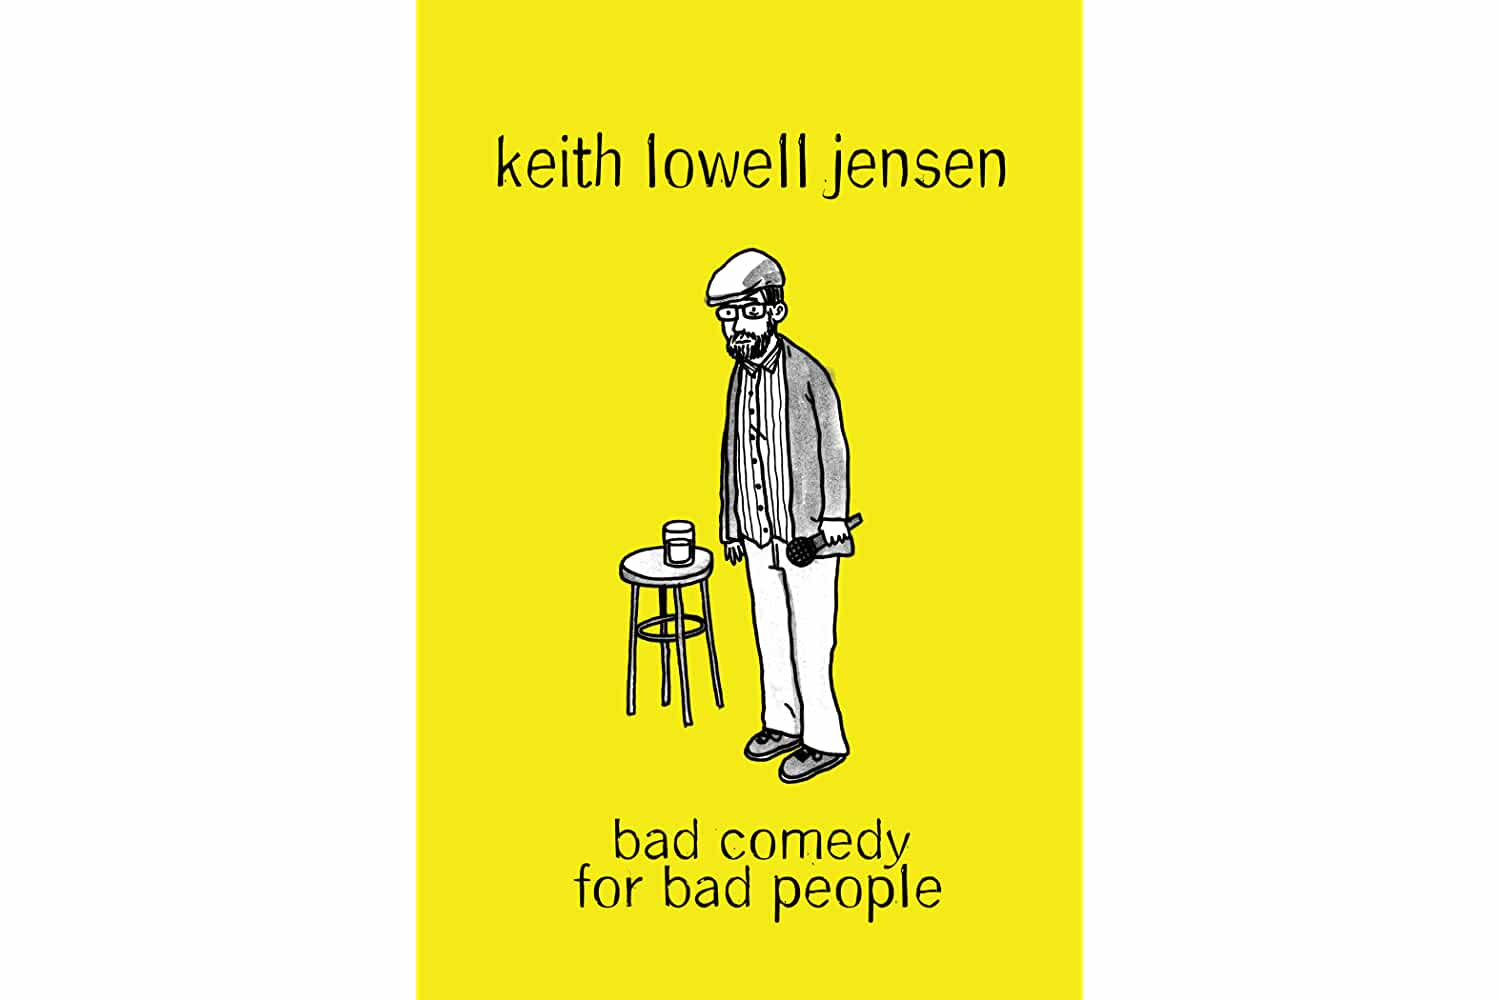 Keith Lowell Jensen: Bad Comedy for Bad People (2018)